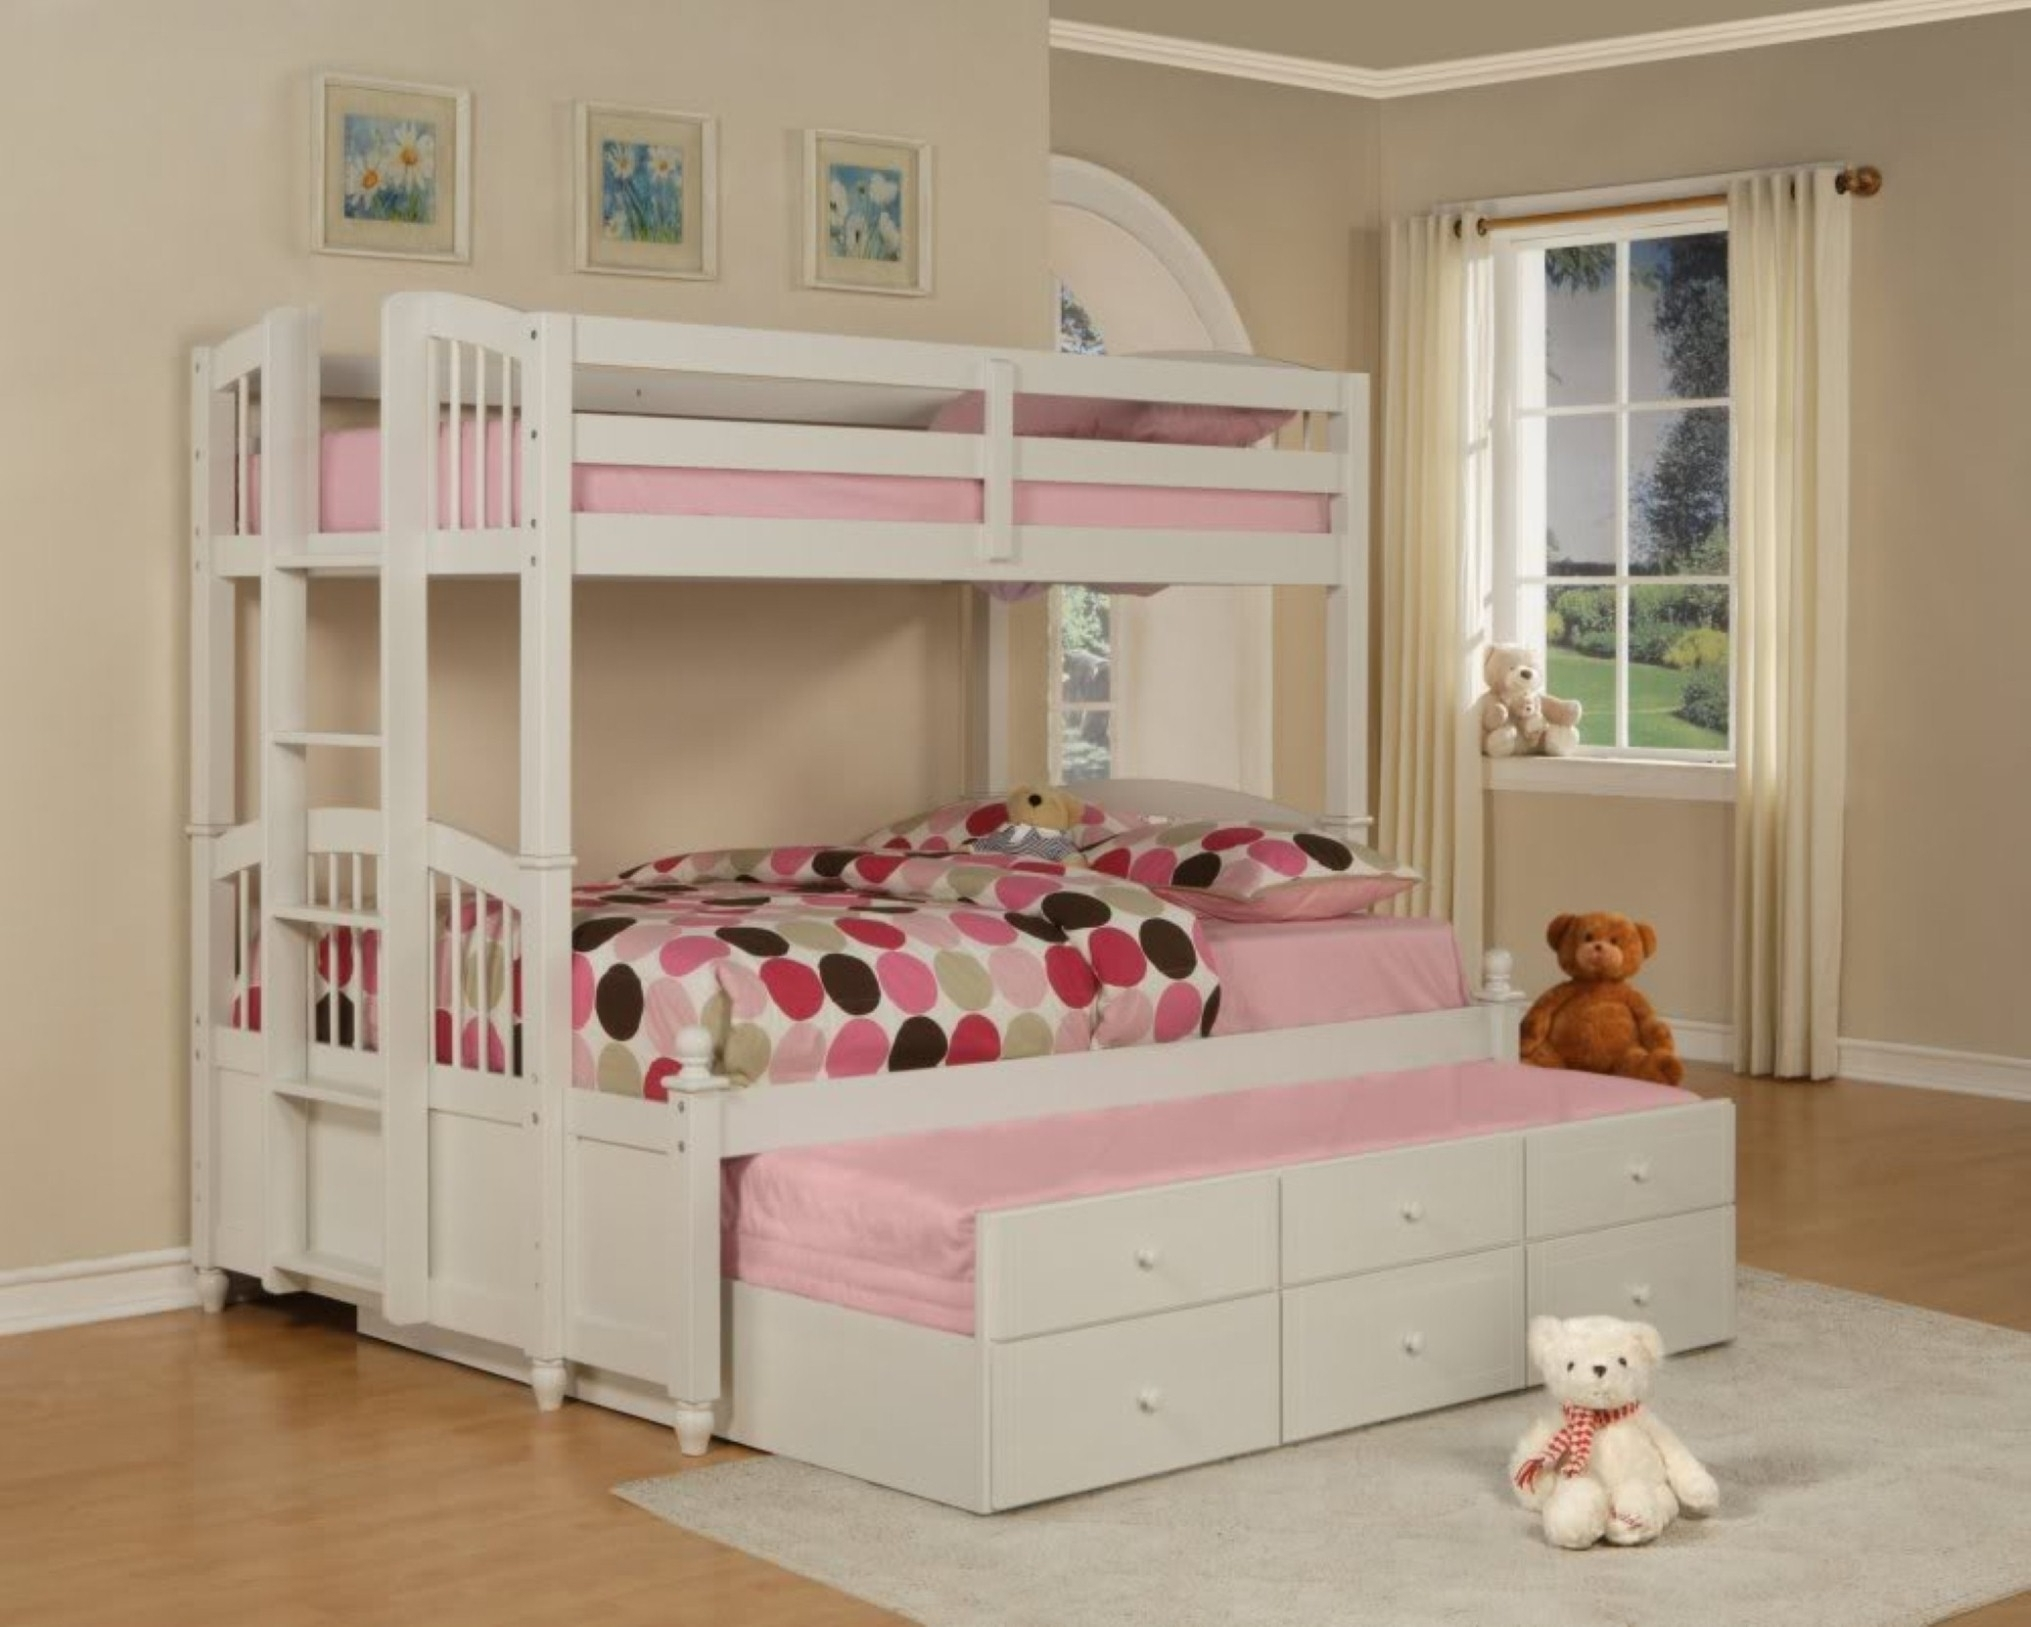 Luxury Interior Kids Room Idea For Girl Focus On Wonderful White Bunk Bed With Trundle And Polka Dot Bedding (Image 83 of 123)